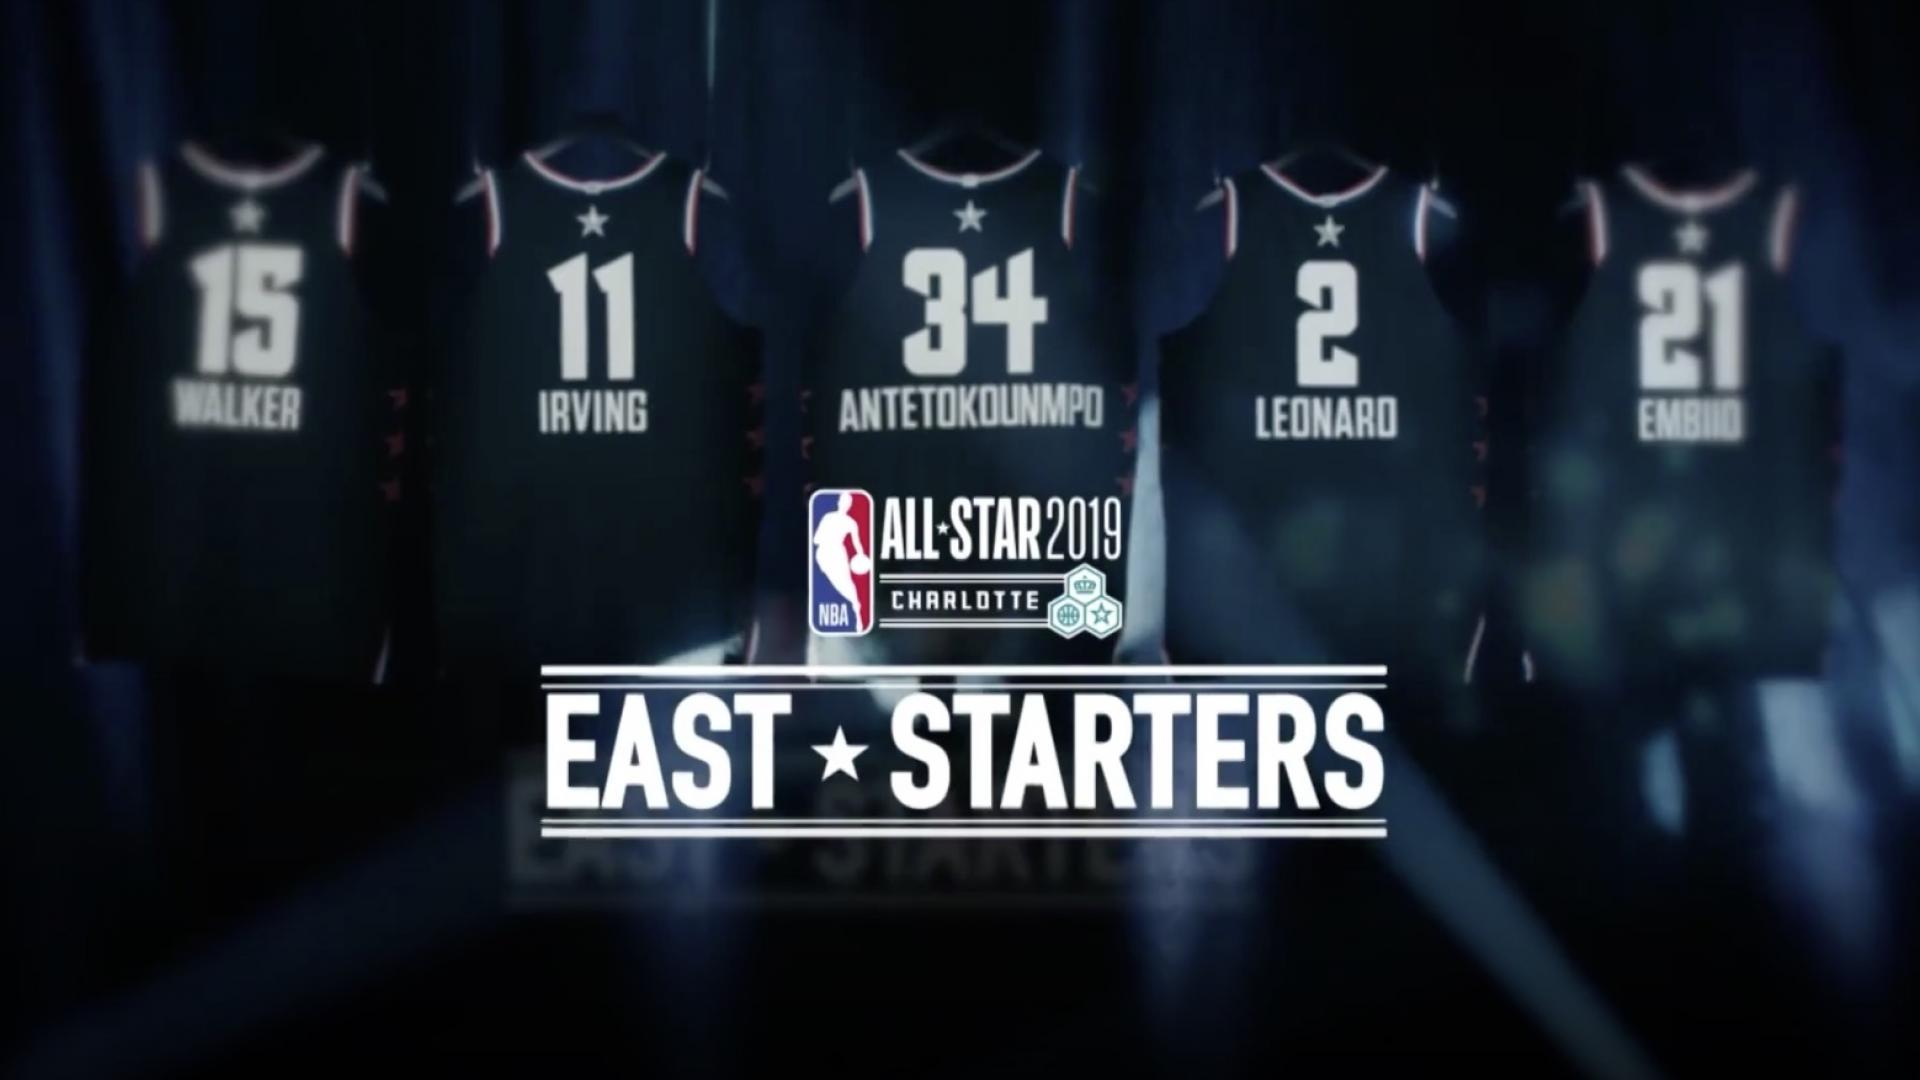 Captains Lebron Giannis Highlight Starters For Nba All Star 2019